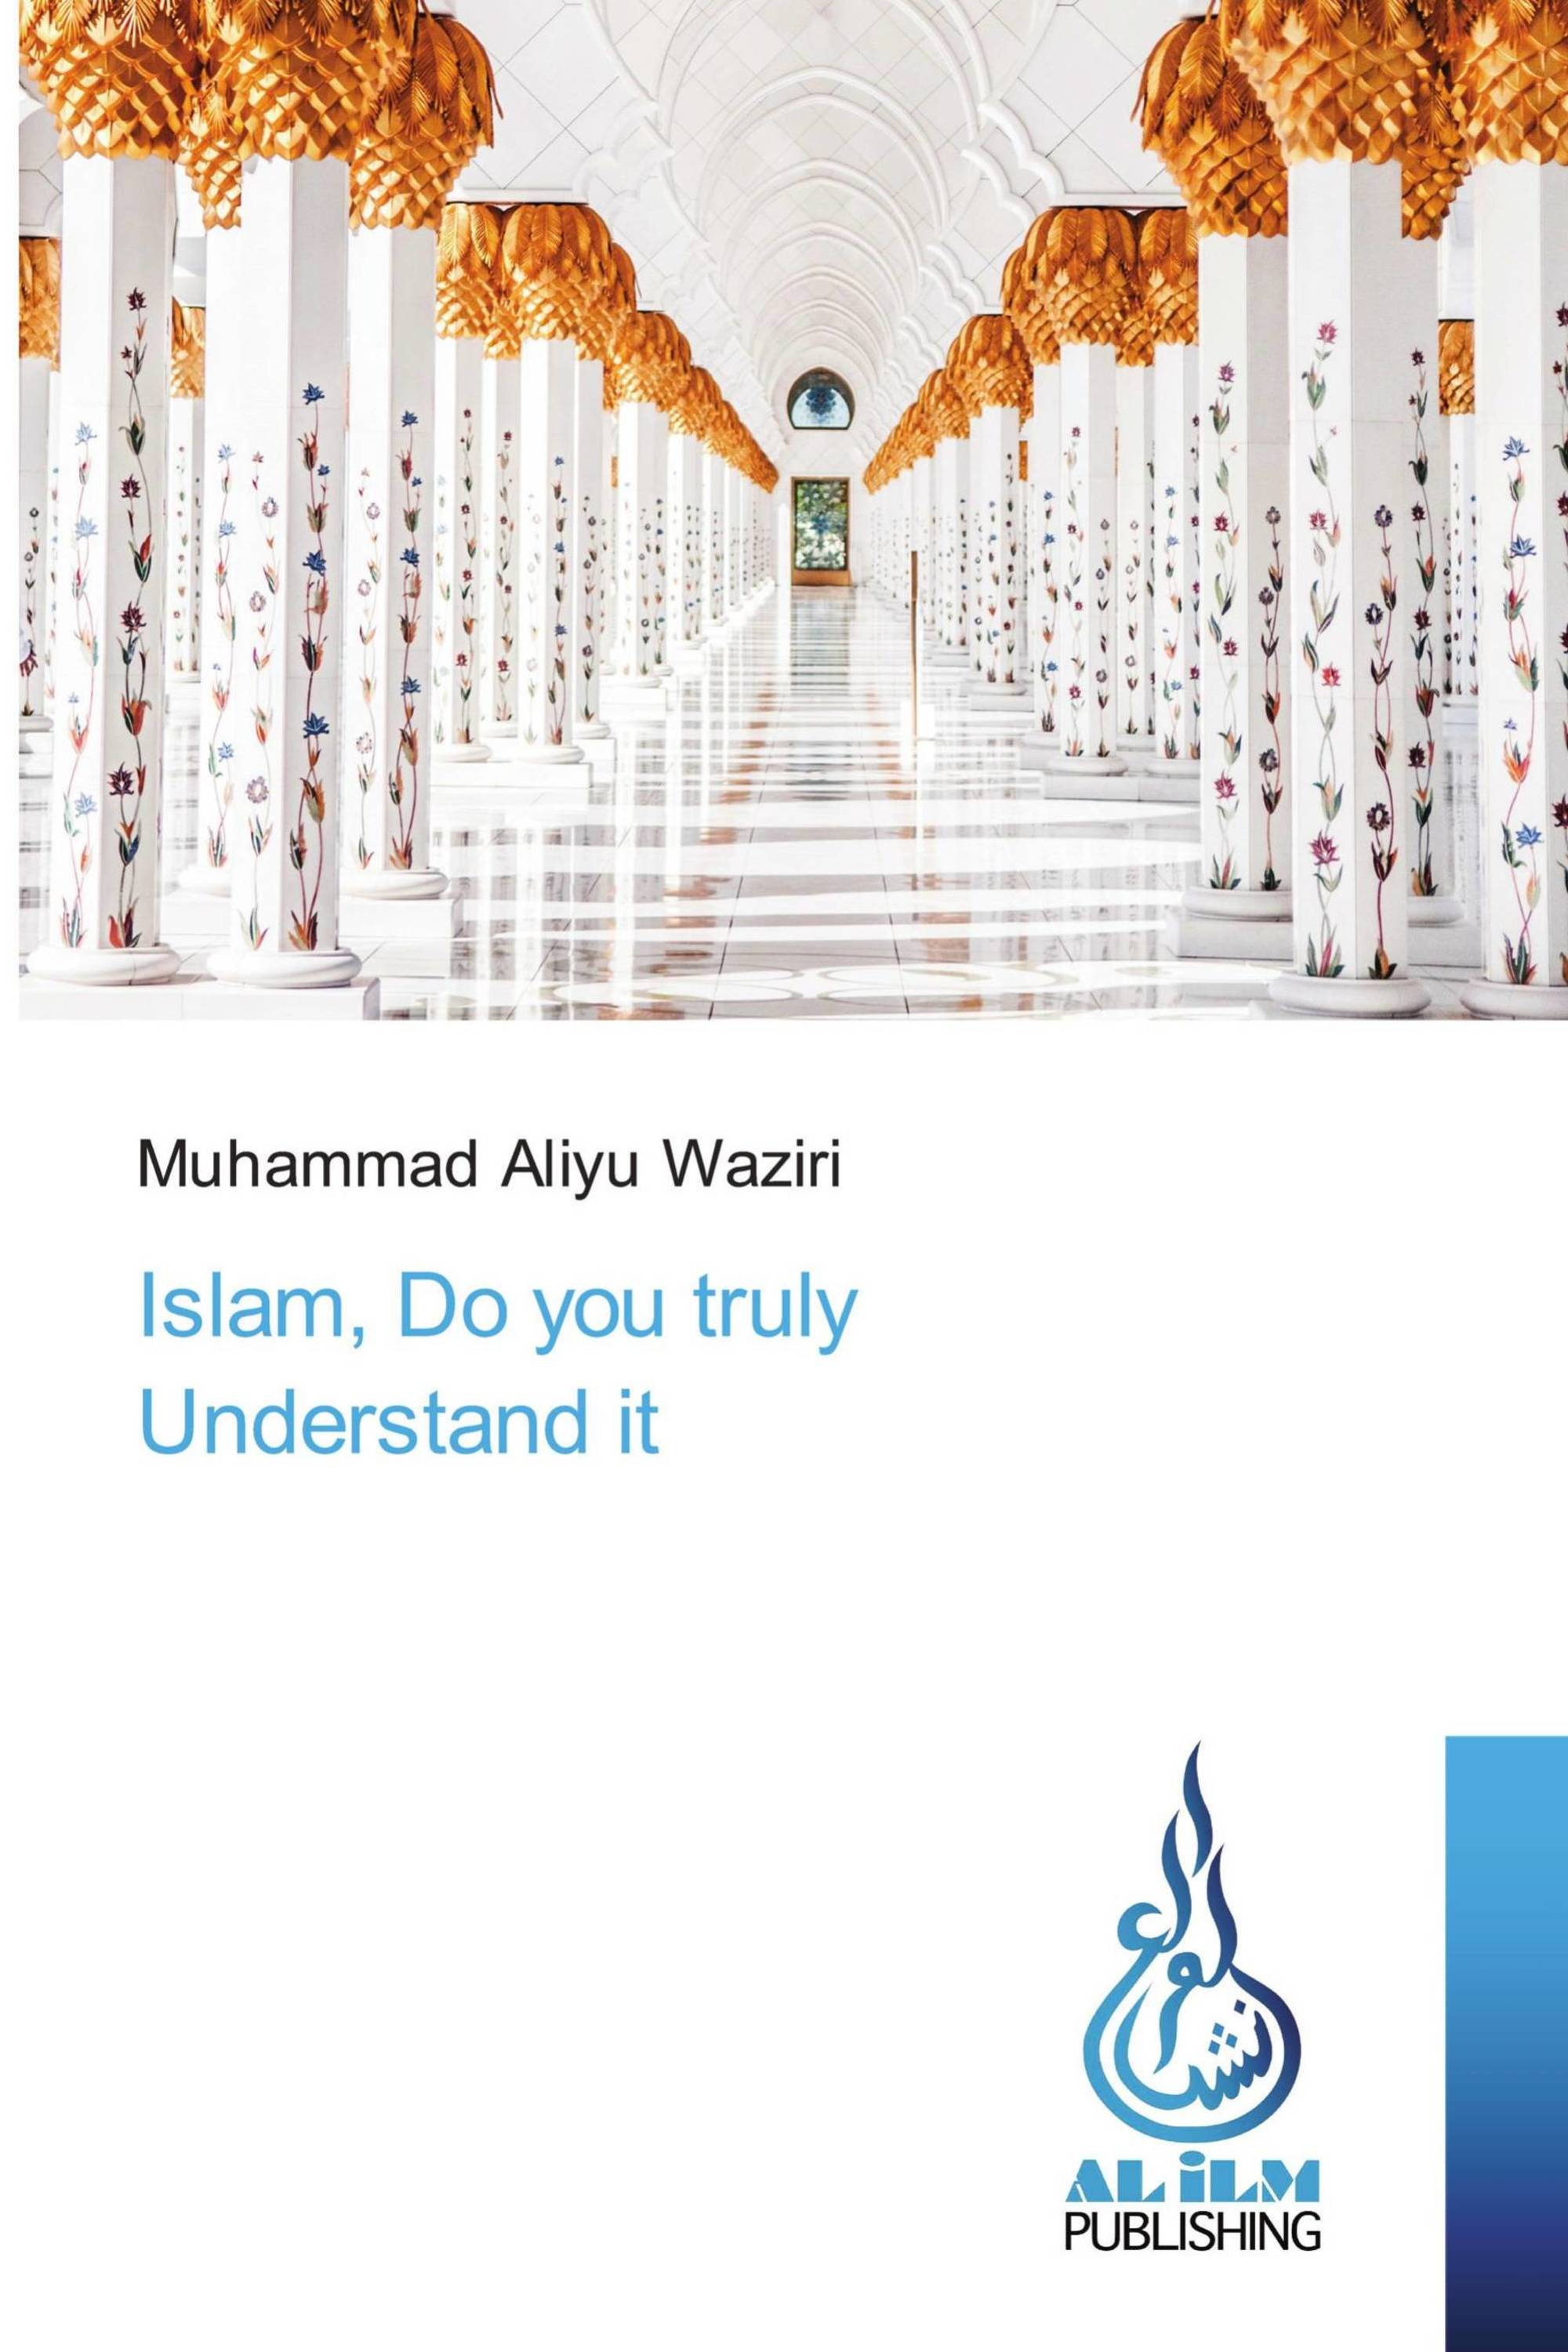 Islam, Do you truly Understand it